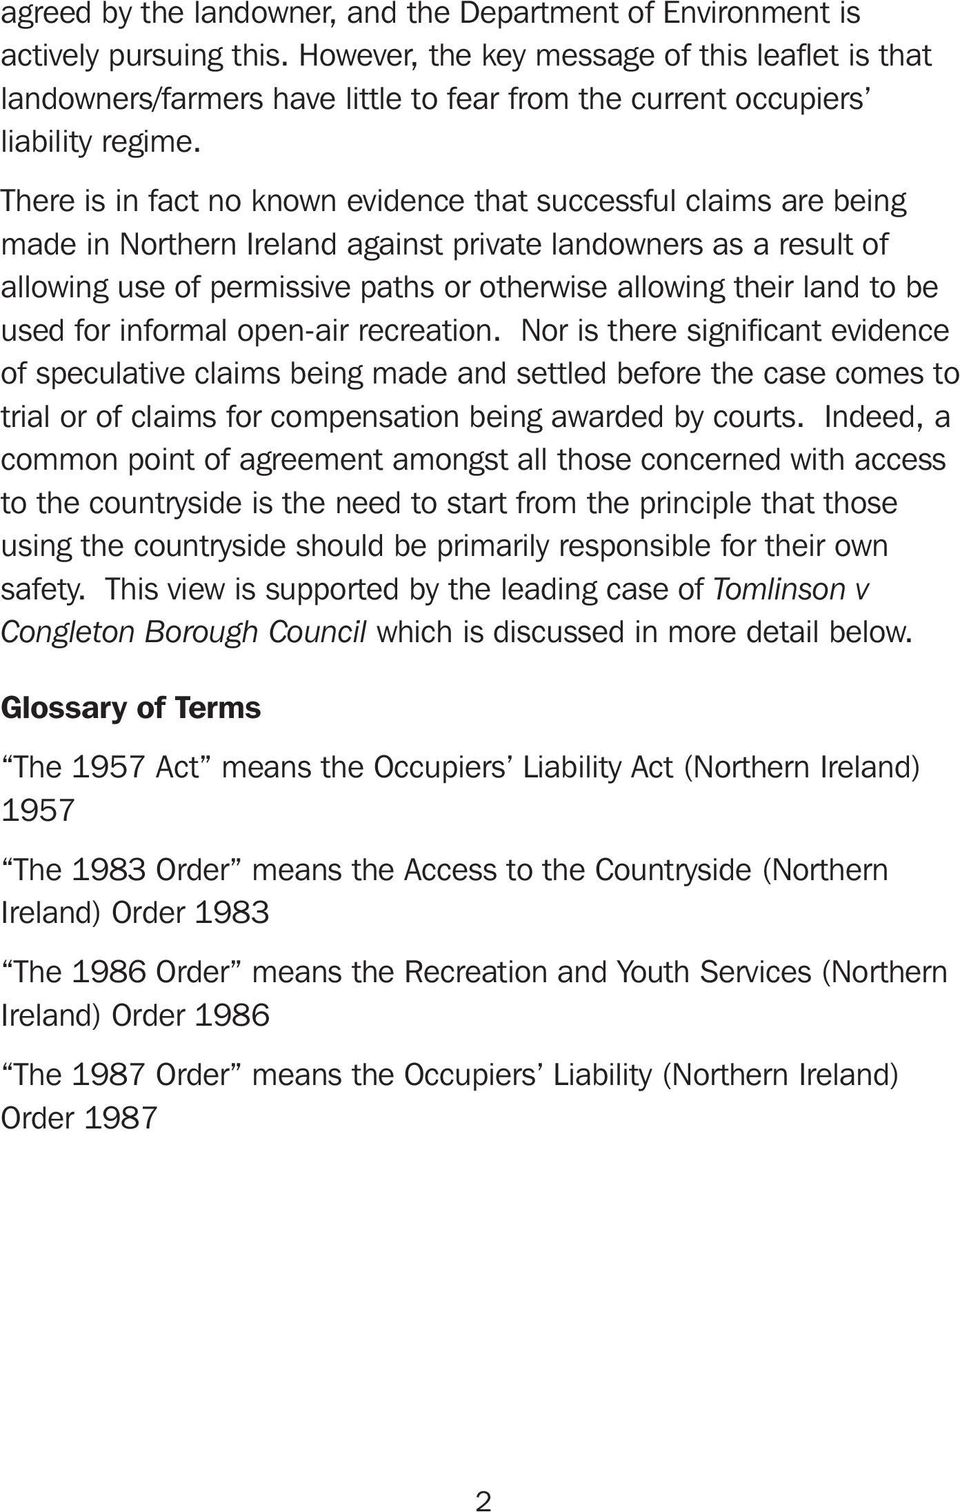 There is in fact no known evidence that successful claims are being made in Northern Ireland against private landowners as a result of allowing use of permissive paths or otherwise allowing their